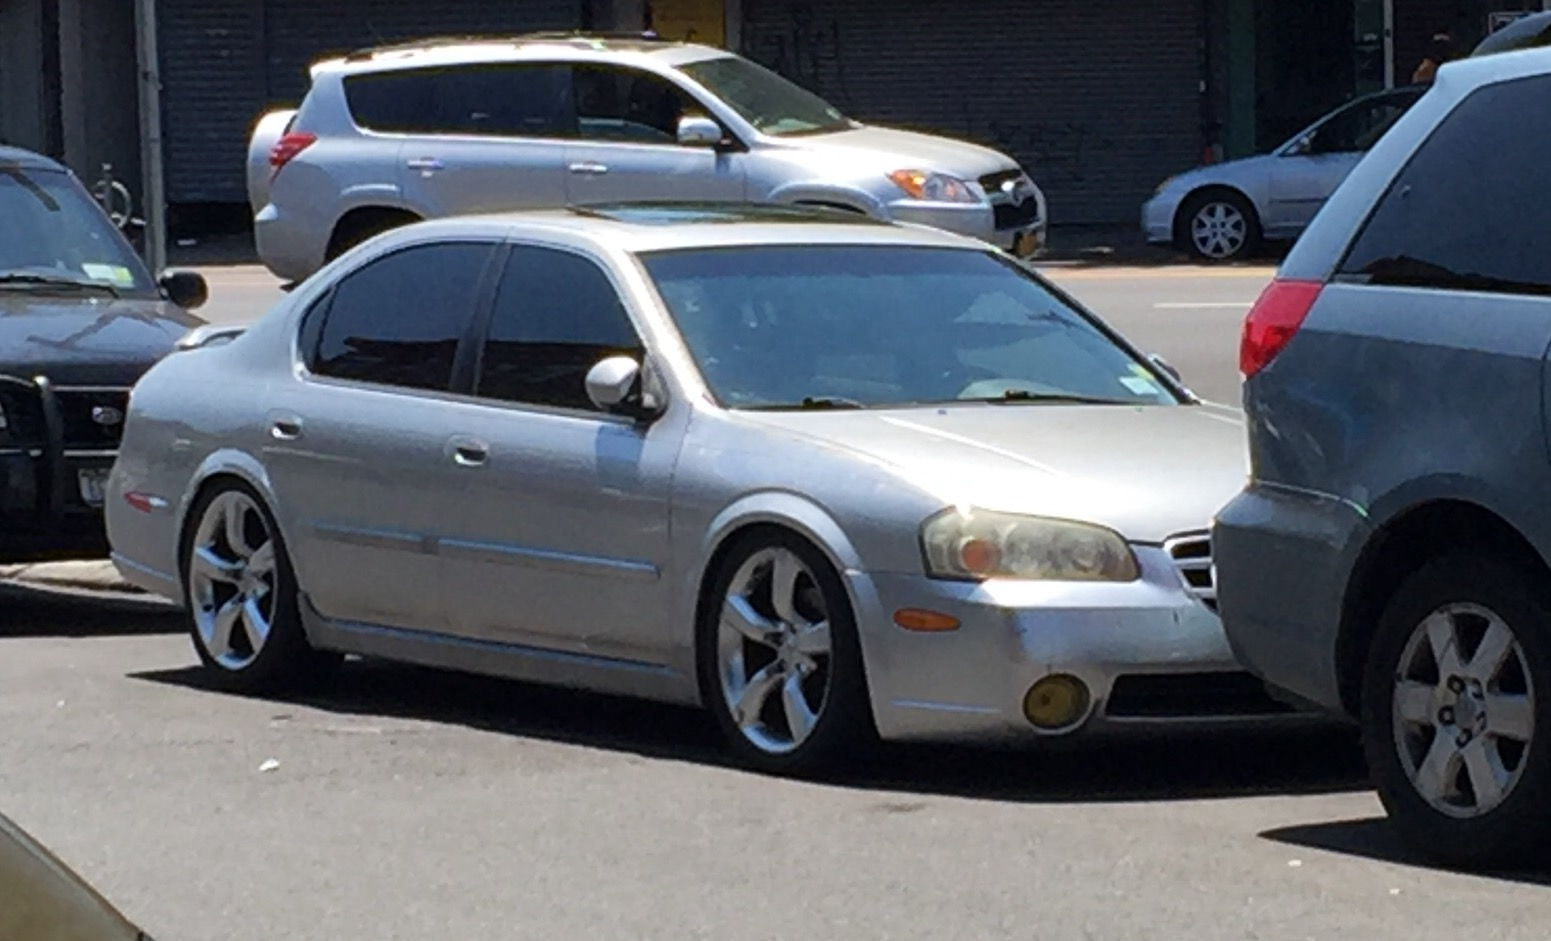 Worksheet. NY 2003 Nissan Maxima For Sale Quick sale  Maxima Forums